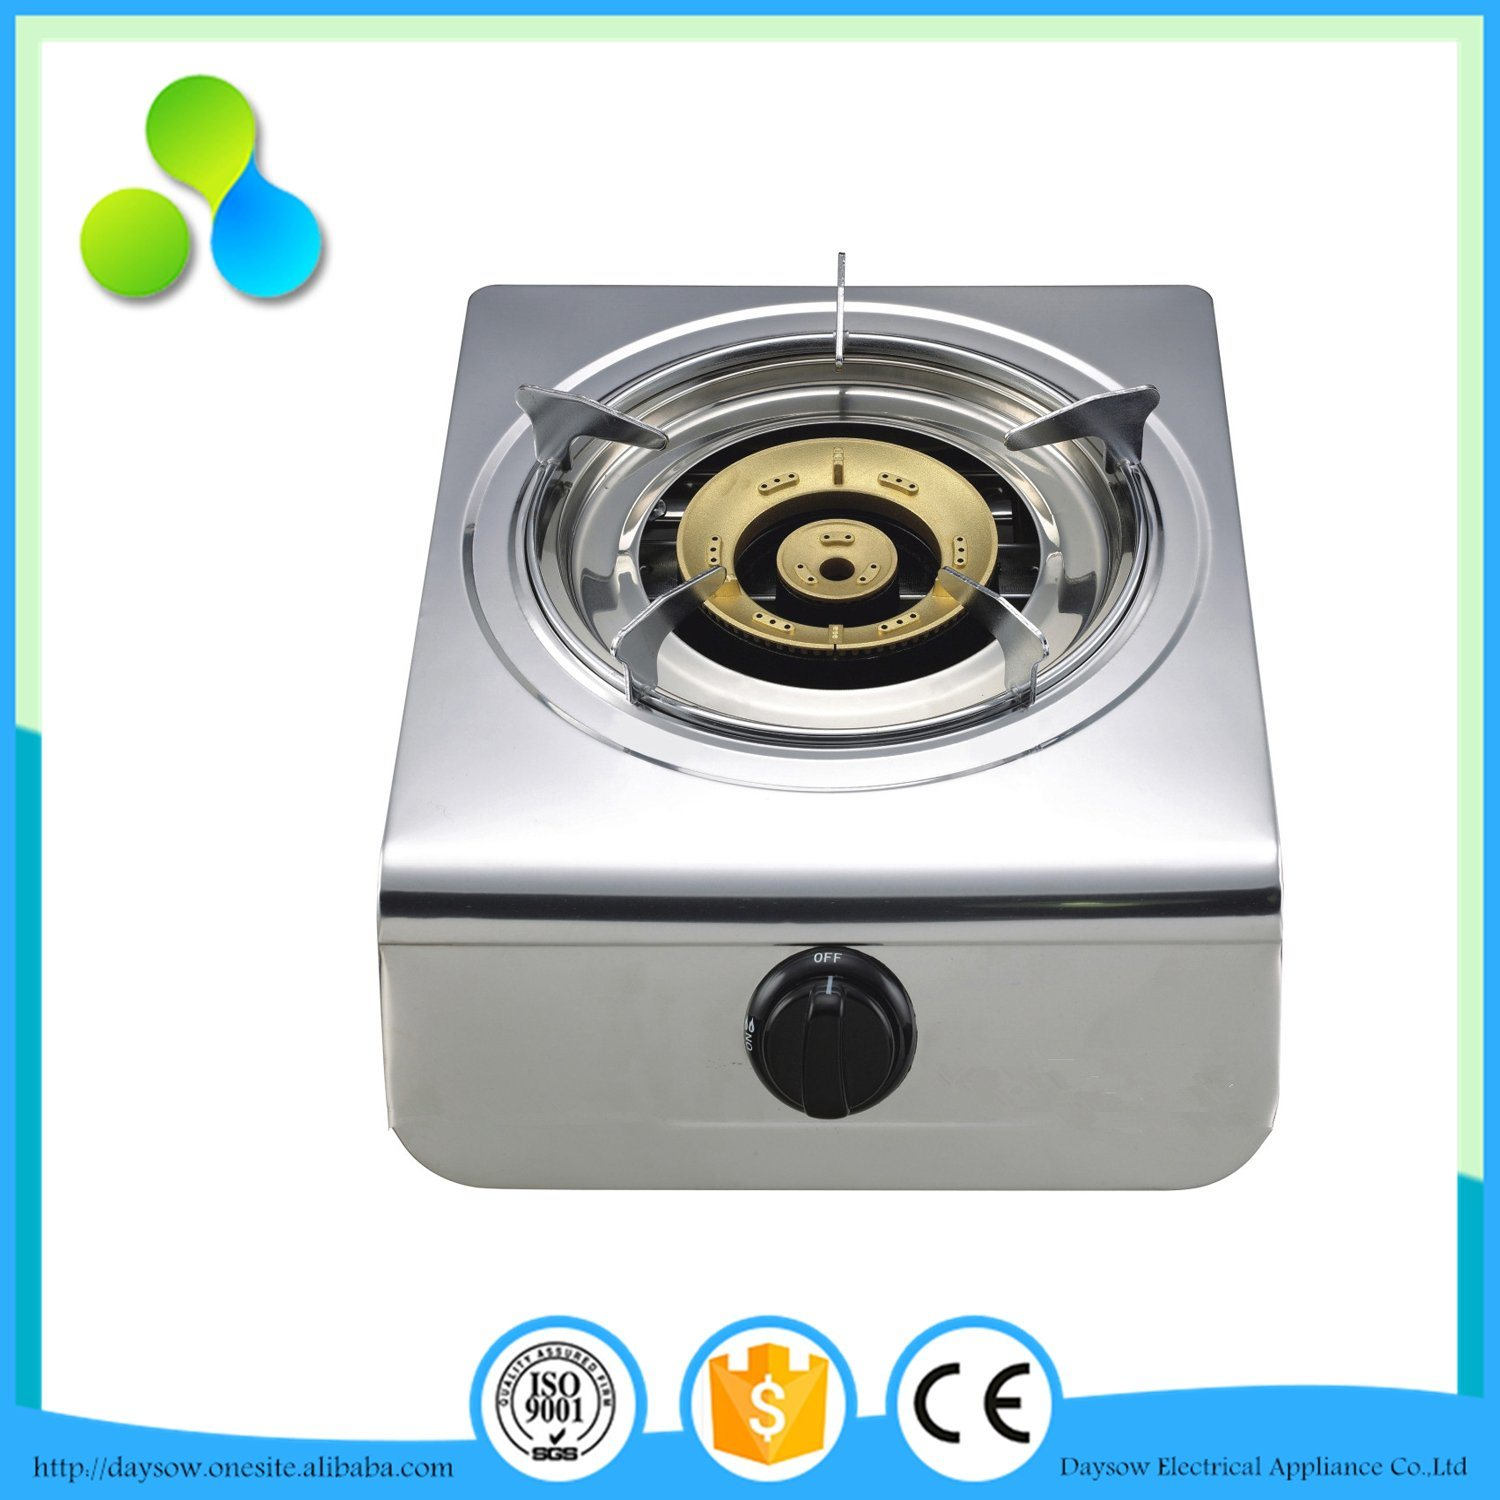 New Ignition Way S. S 4 Burners Gas Stove